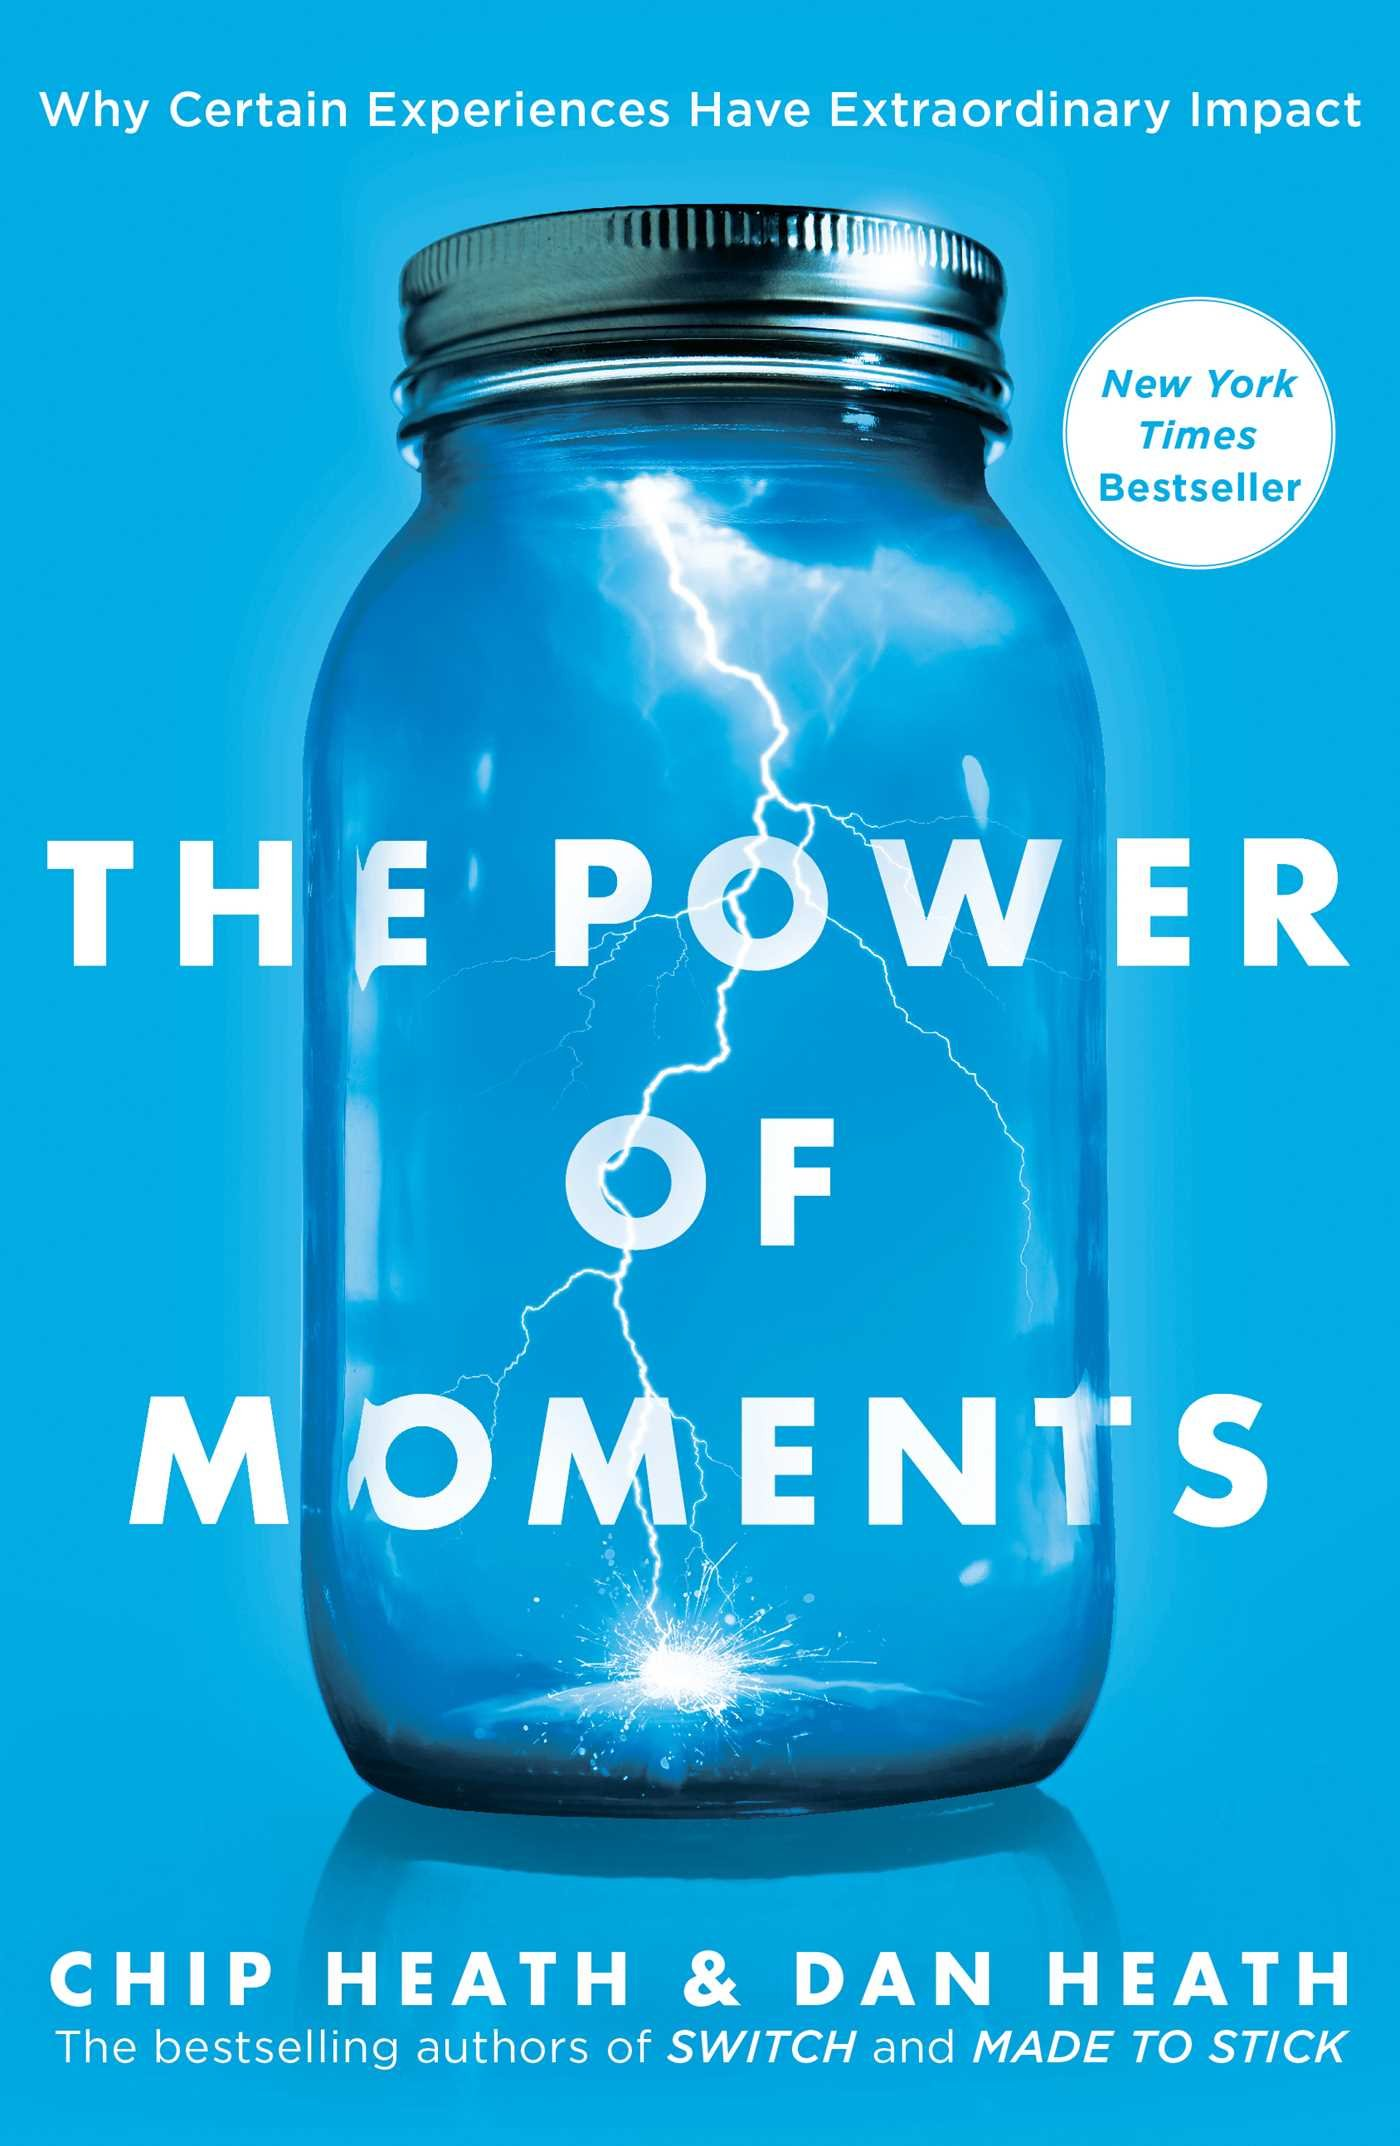 The Power of Moments - if you know anything about me, you know i am all about experiences and trying to squeeze something special out of the ordinary or find the fun in just about anything.one resolution that i don't hear too much but try to incorporate every year is to have a memorable year.this book is all about that - it touches on how to identify and create significance in your life, whether it's in your work life or your personal relationships. throughout the year, resolutions tend to fall off because we revert back to our routines - maybe because it's what comfortable, or because it requires less effort. this book helps to reinforce why it's so important to stay intentional and create meaning in our life -because although we revert to routine more often than not, what we ultimately remember is one time we took a detour home to stop for ice cream rather than the 350 times we took the standard route home.and if you read it.. when should we meet up at the popsicle hotline hotel? x